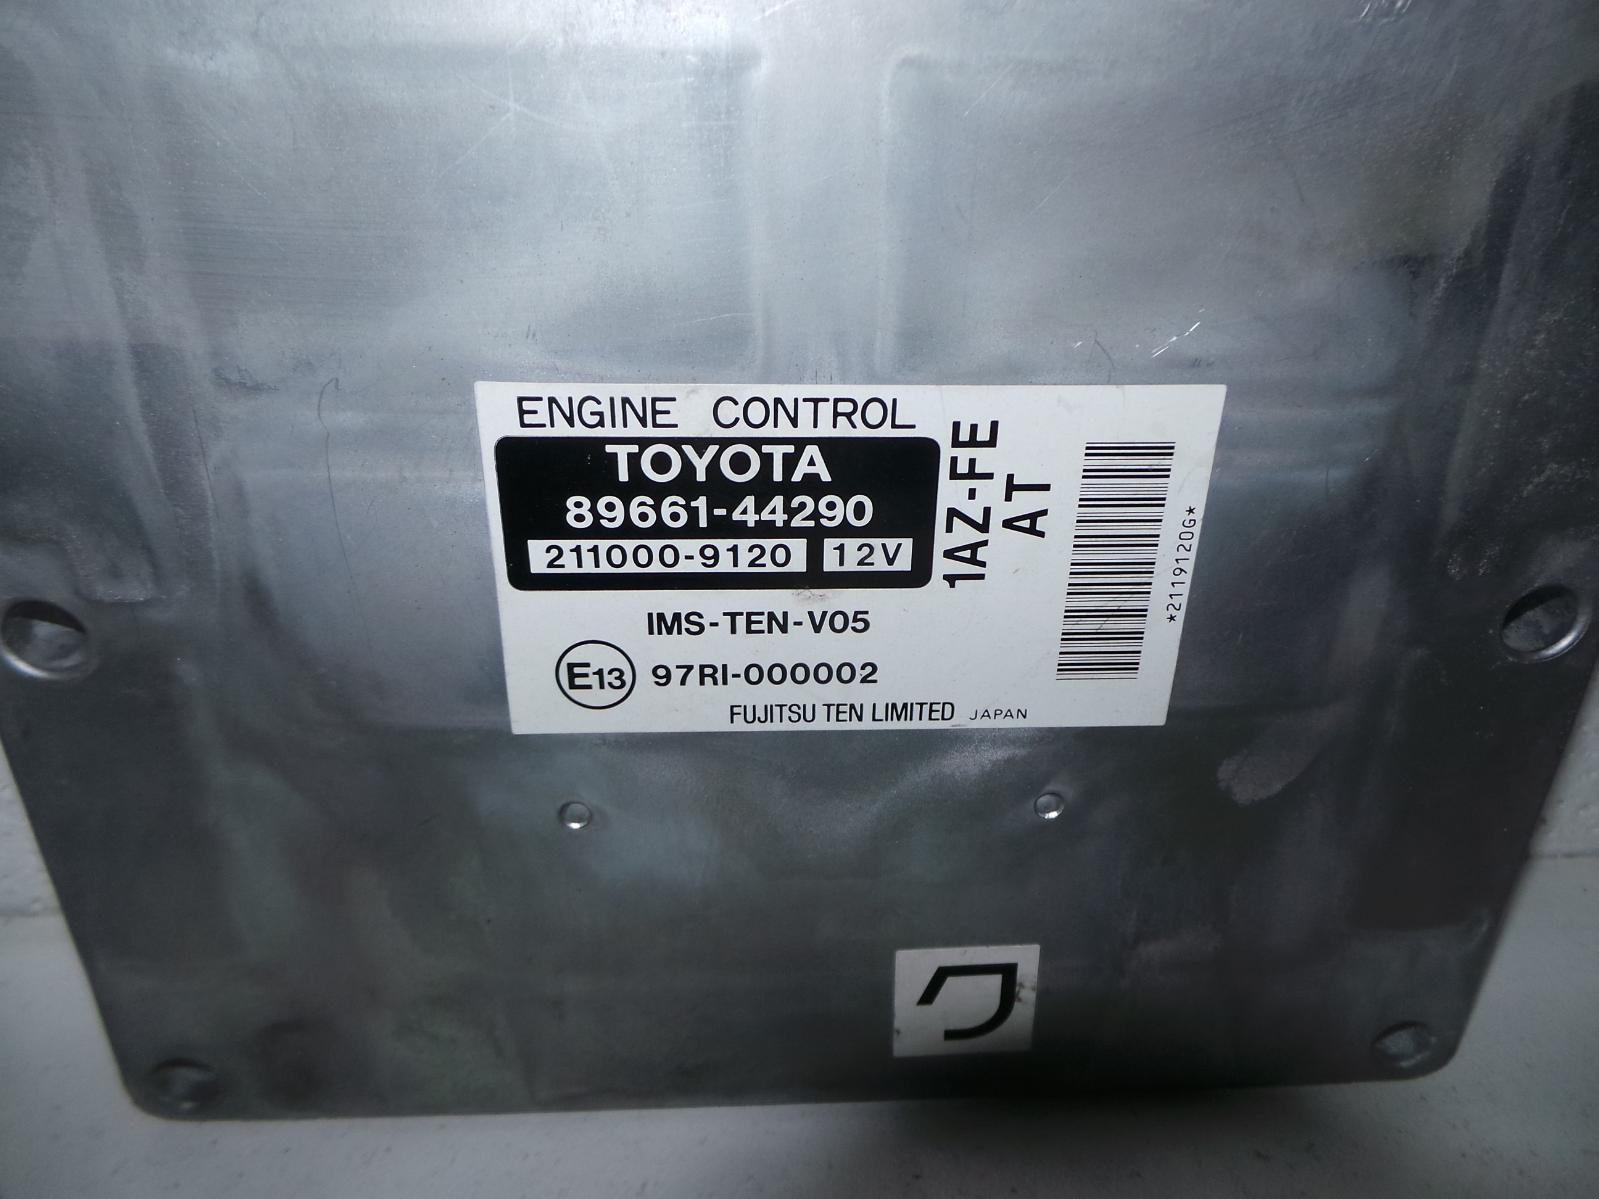 TOYOTA AVENSIS, Ecu, ENGINE ECU, 2.0, 1AZ-FE, PETROL, ECU ONLY, ACM20R, 12/01-11/03